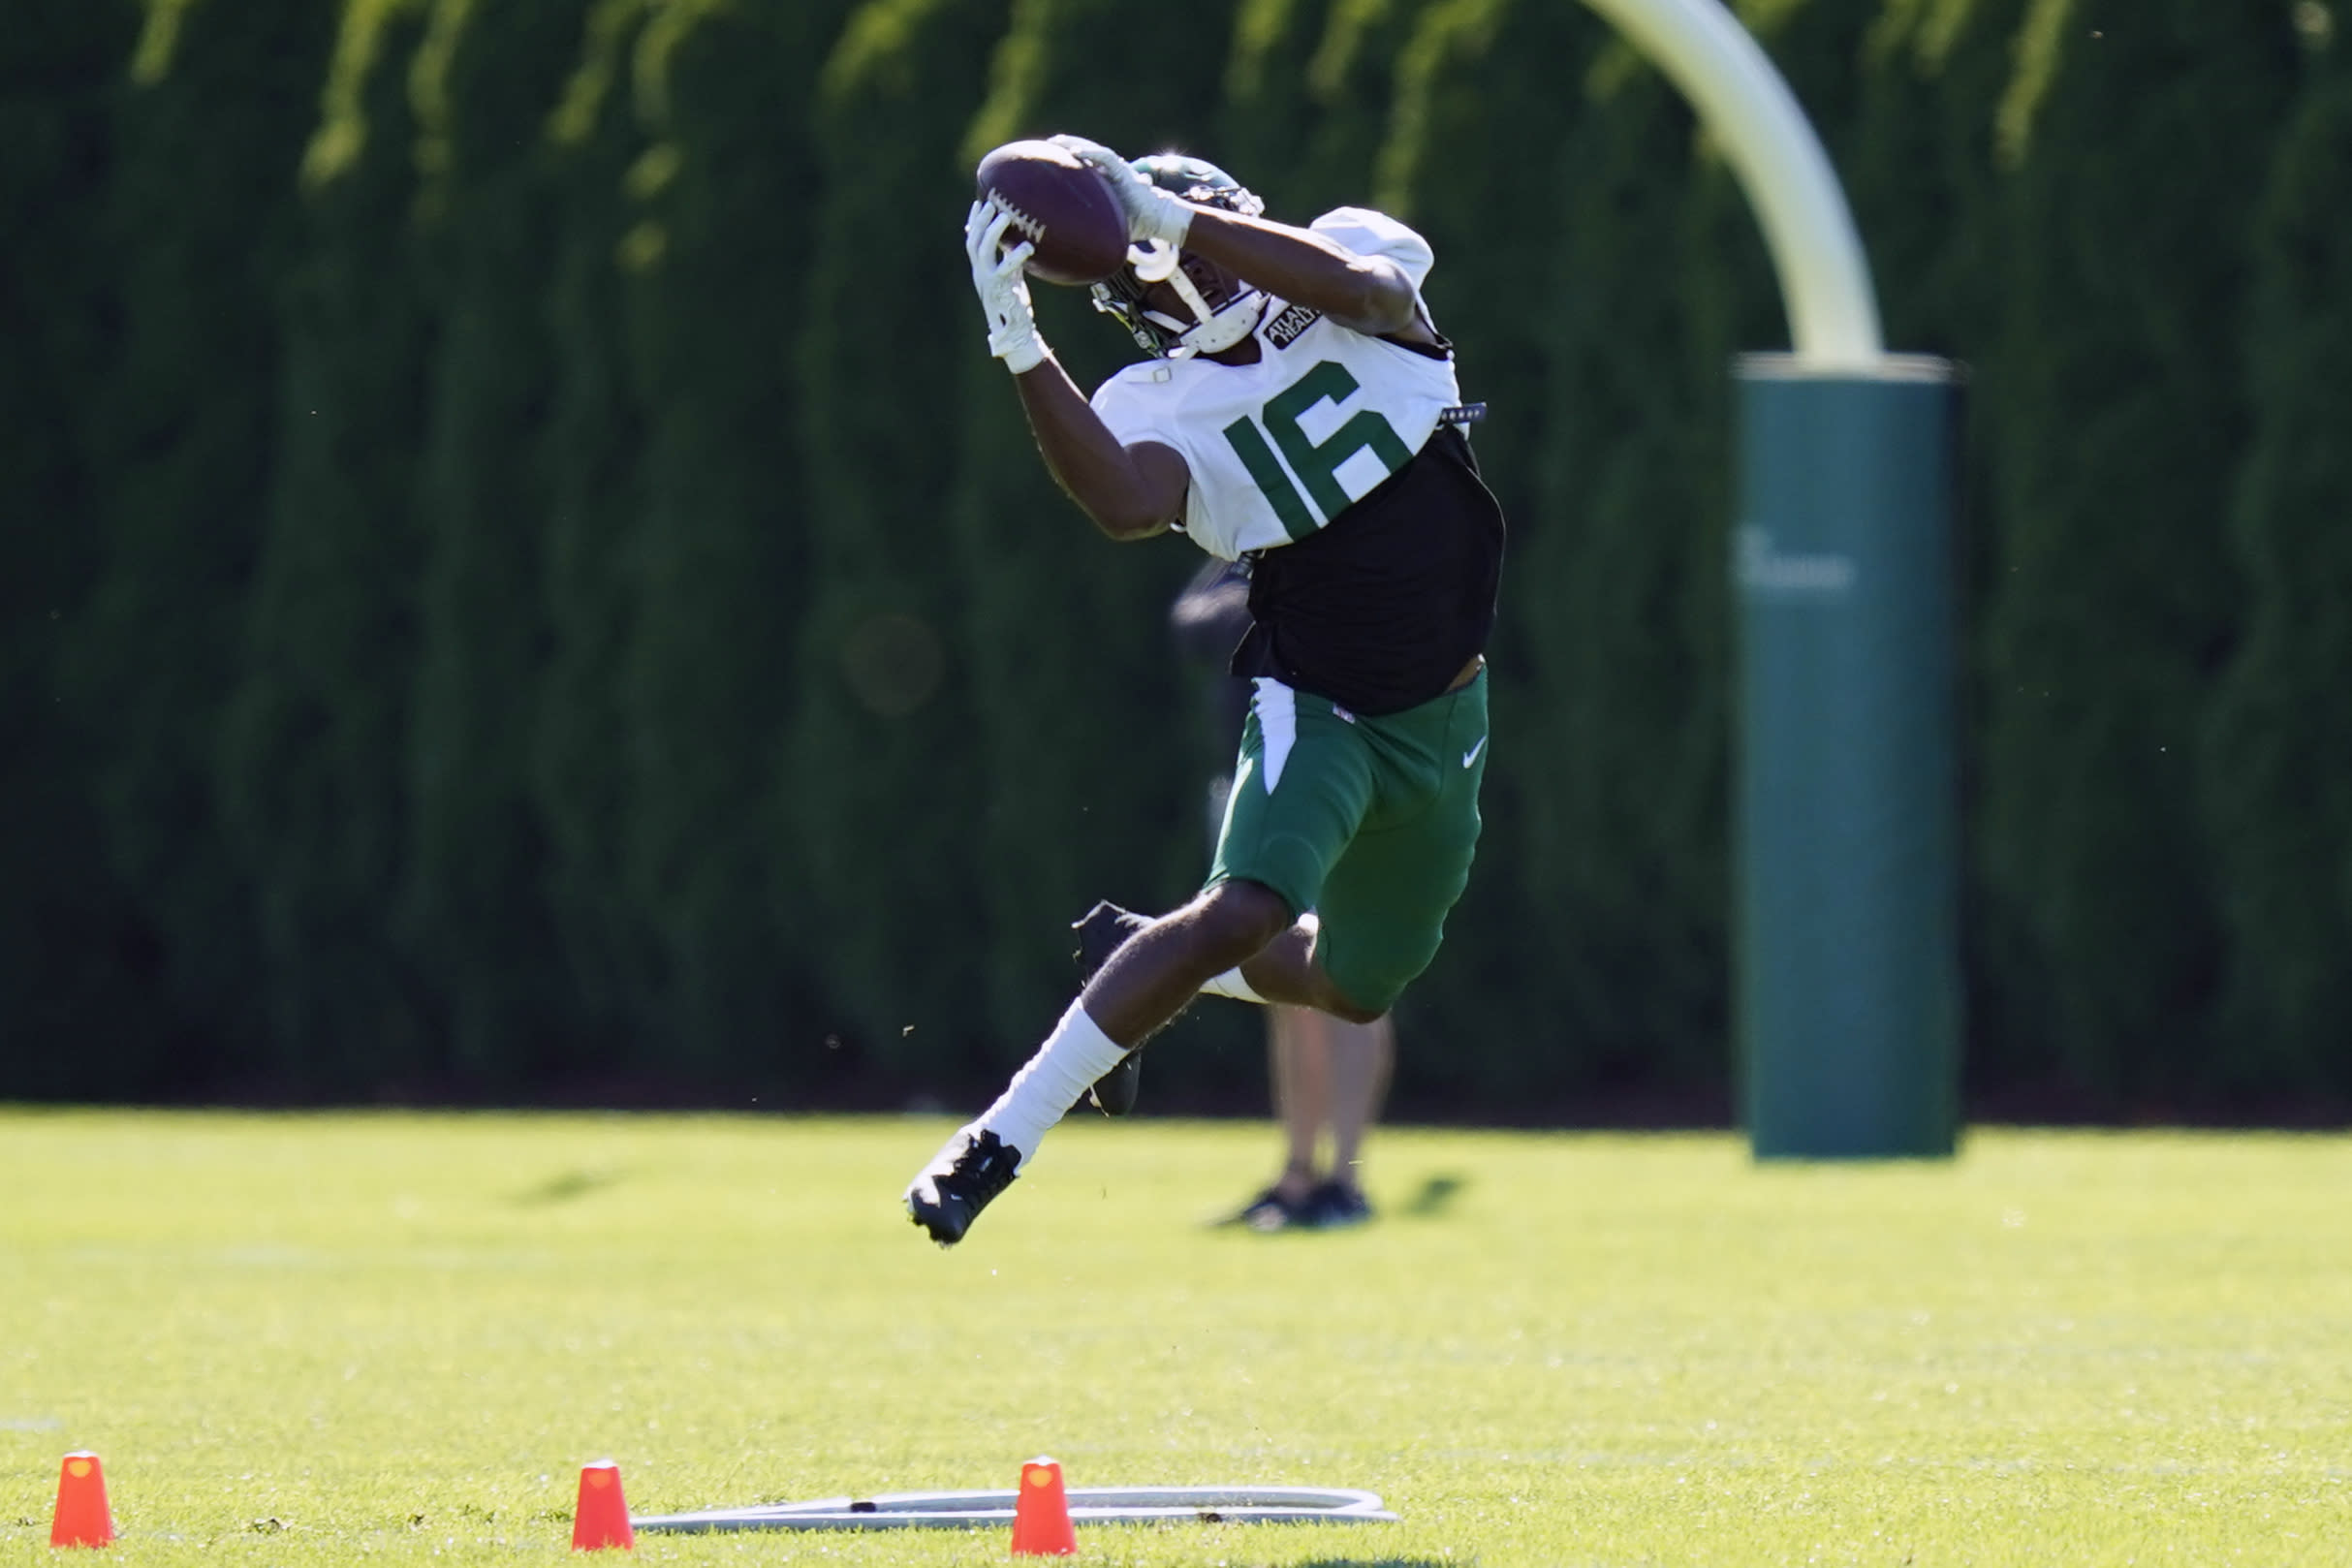 New York Jets' Jeff Smith makes a catch during practice at the NFL football team's training camp in Florham Park, N.J., Thursday, Aug. 20, 2020. Jeff Smith was a quarterback for as long as he can remember before a position switch to wide receiver in college. It turned out to be his unexpected path to the NFL. (AP Photo/Seth Wenig)